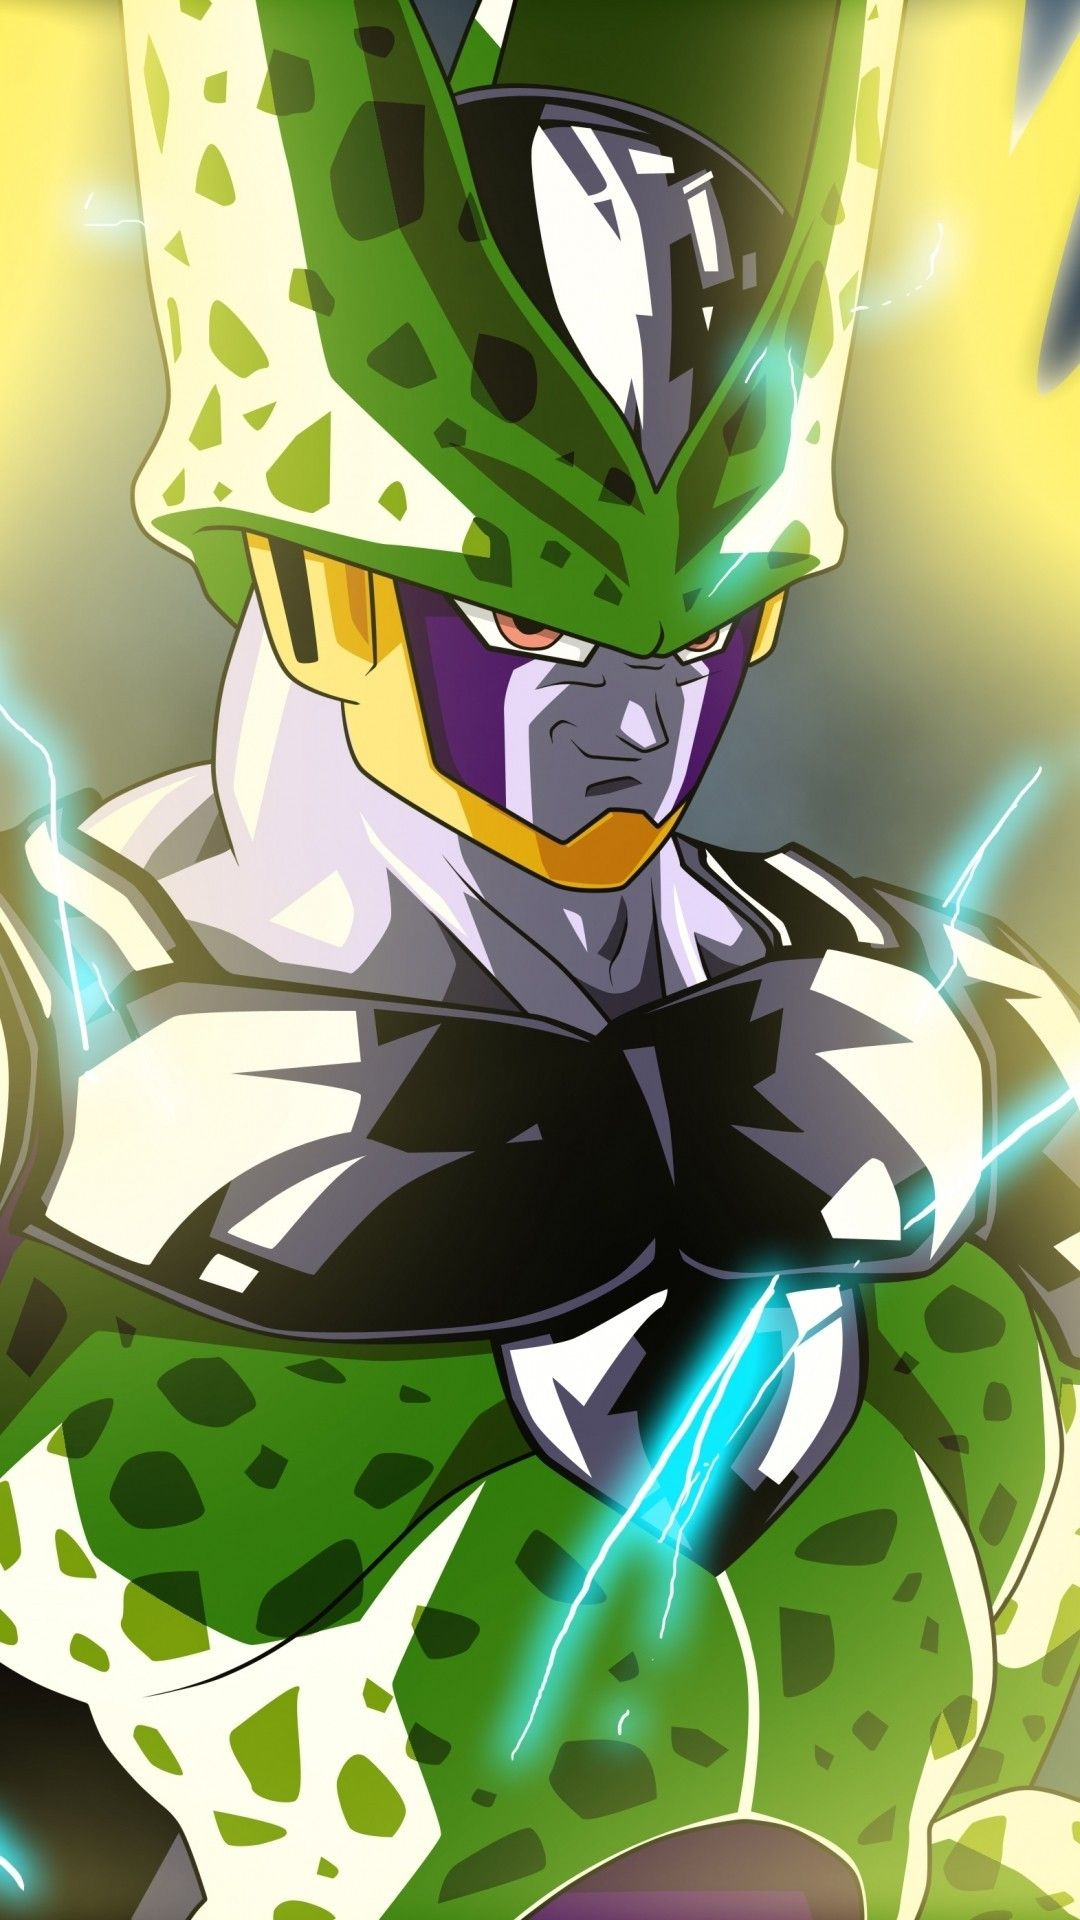 Perfect Cell Dragon Ball Z Iphone Wallpaper Dbz Characters Cell Dragon Ball Z Iphone 826547 Hd Wallpaper Backgrounds Download